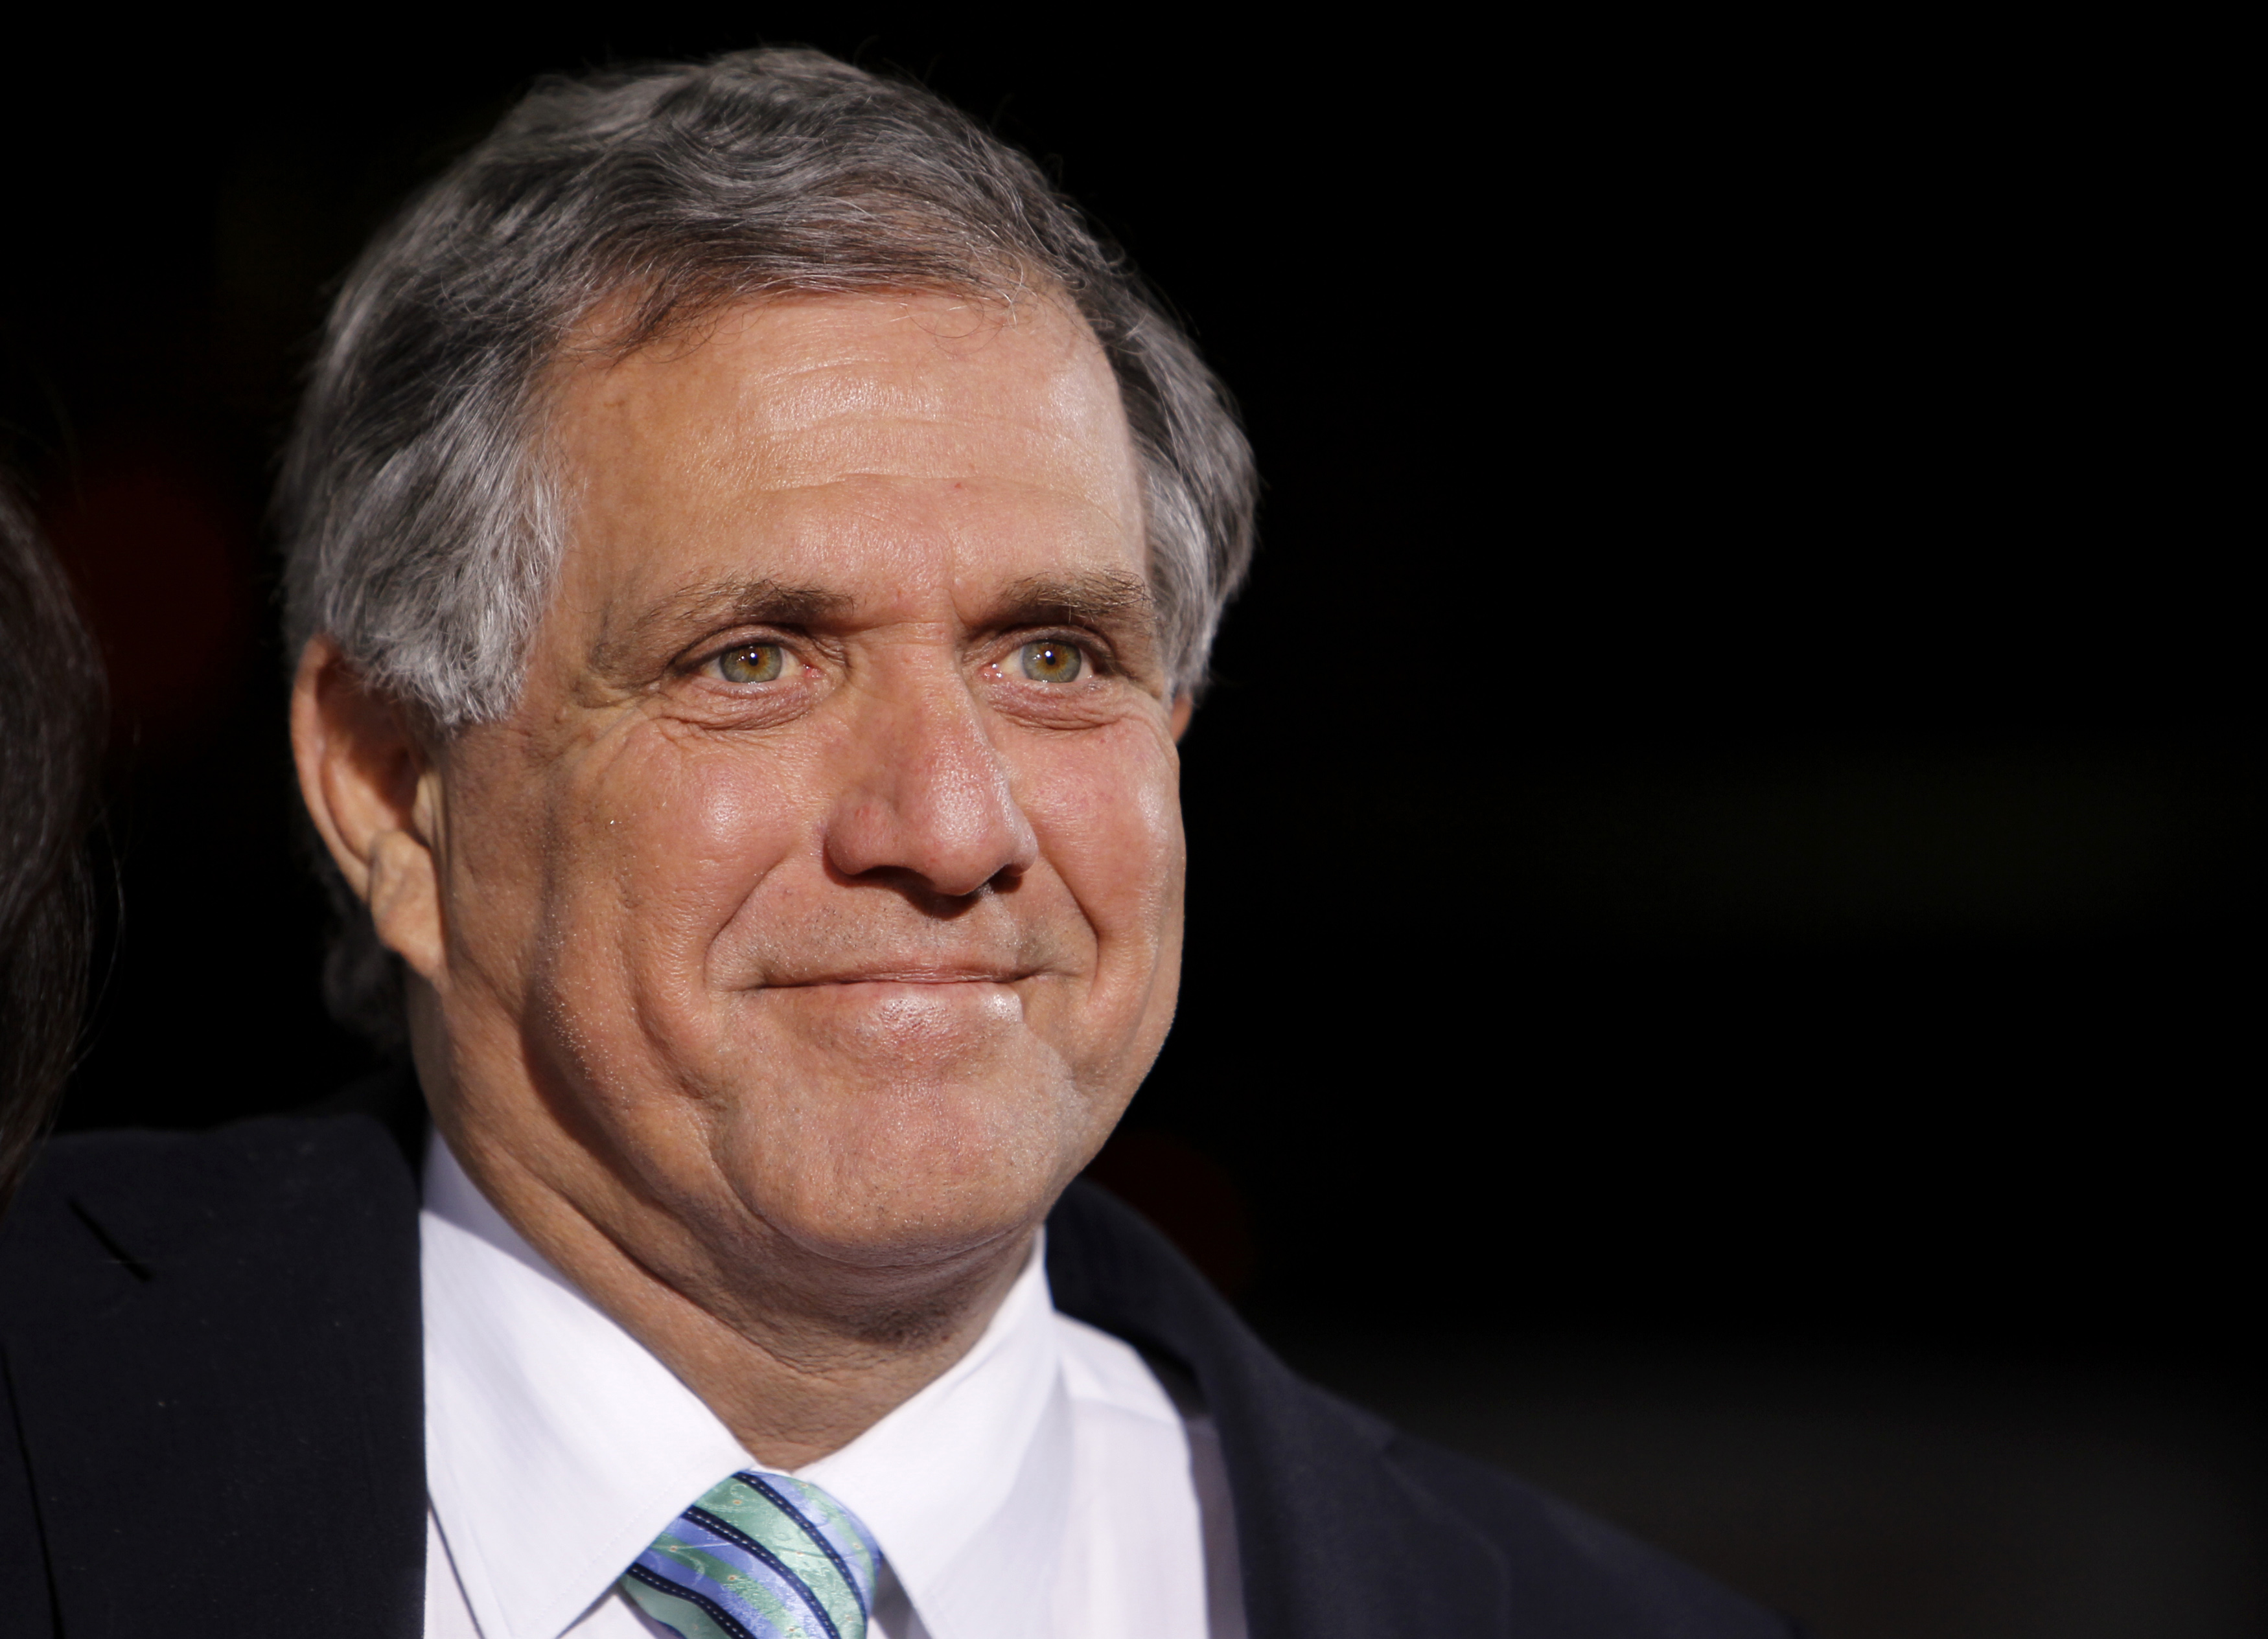 Former CBS chief Les Moonves